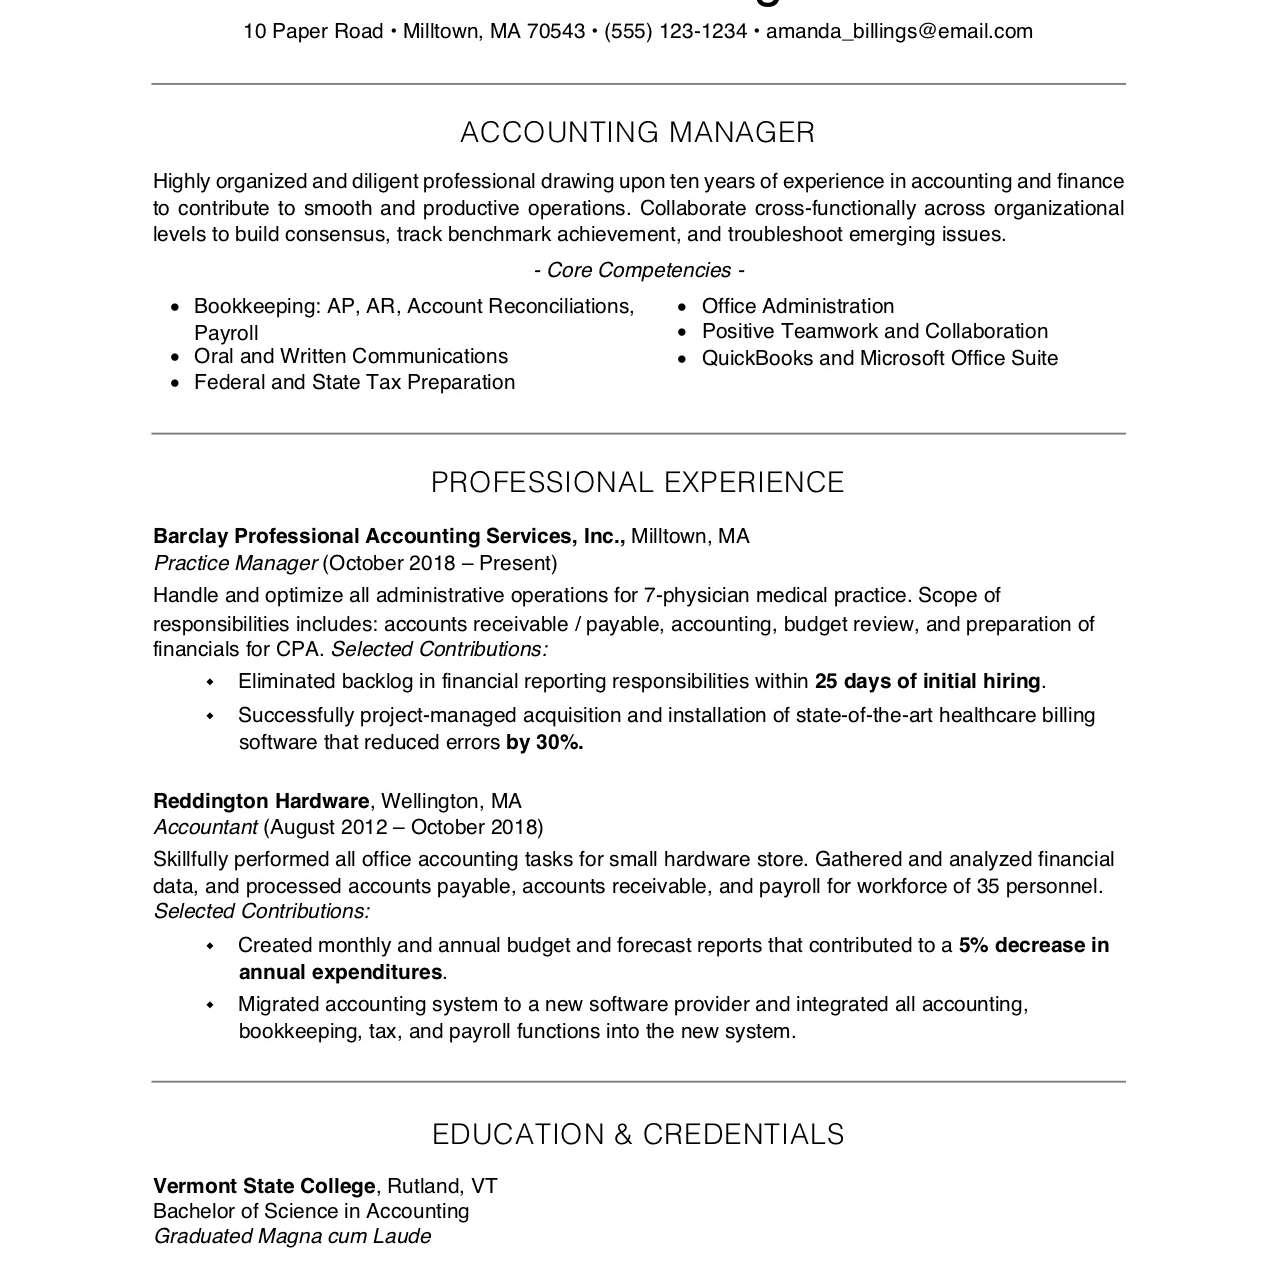 free professional resume examples and writing tips federal samples 2063596res1 length plc Resume Free Federal Resume Samples